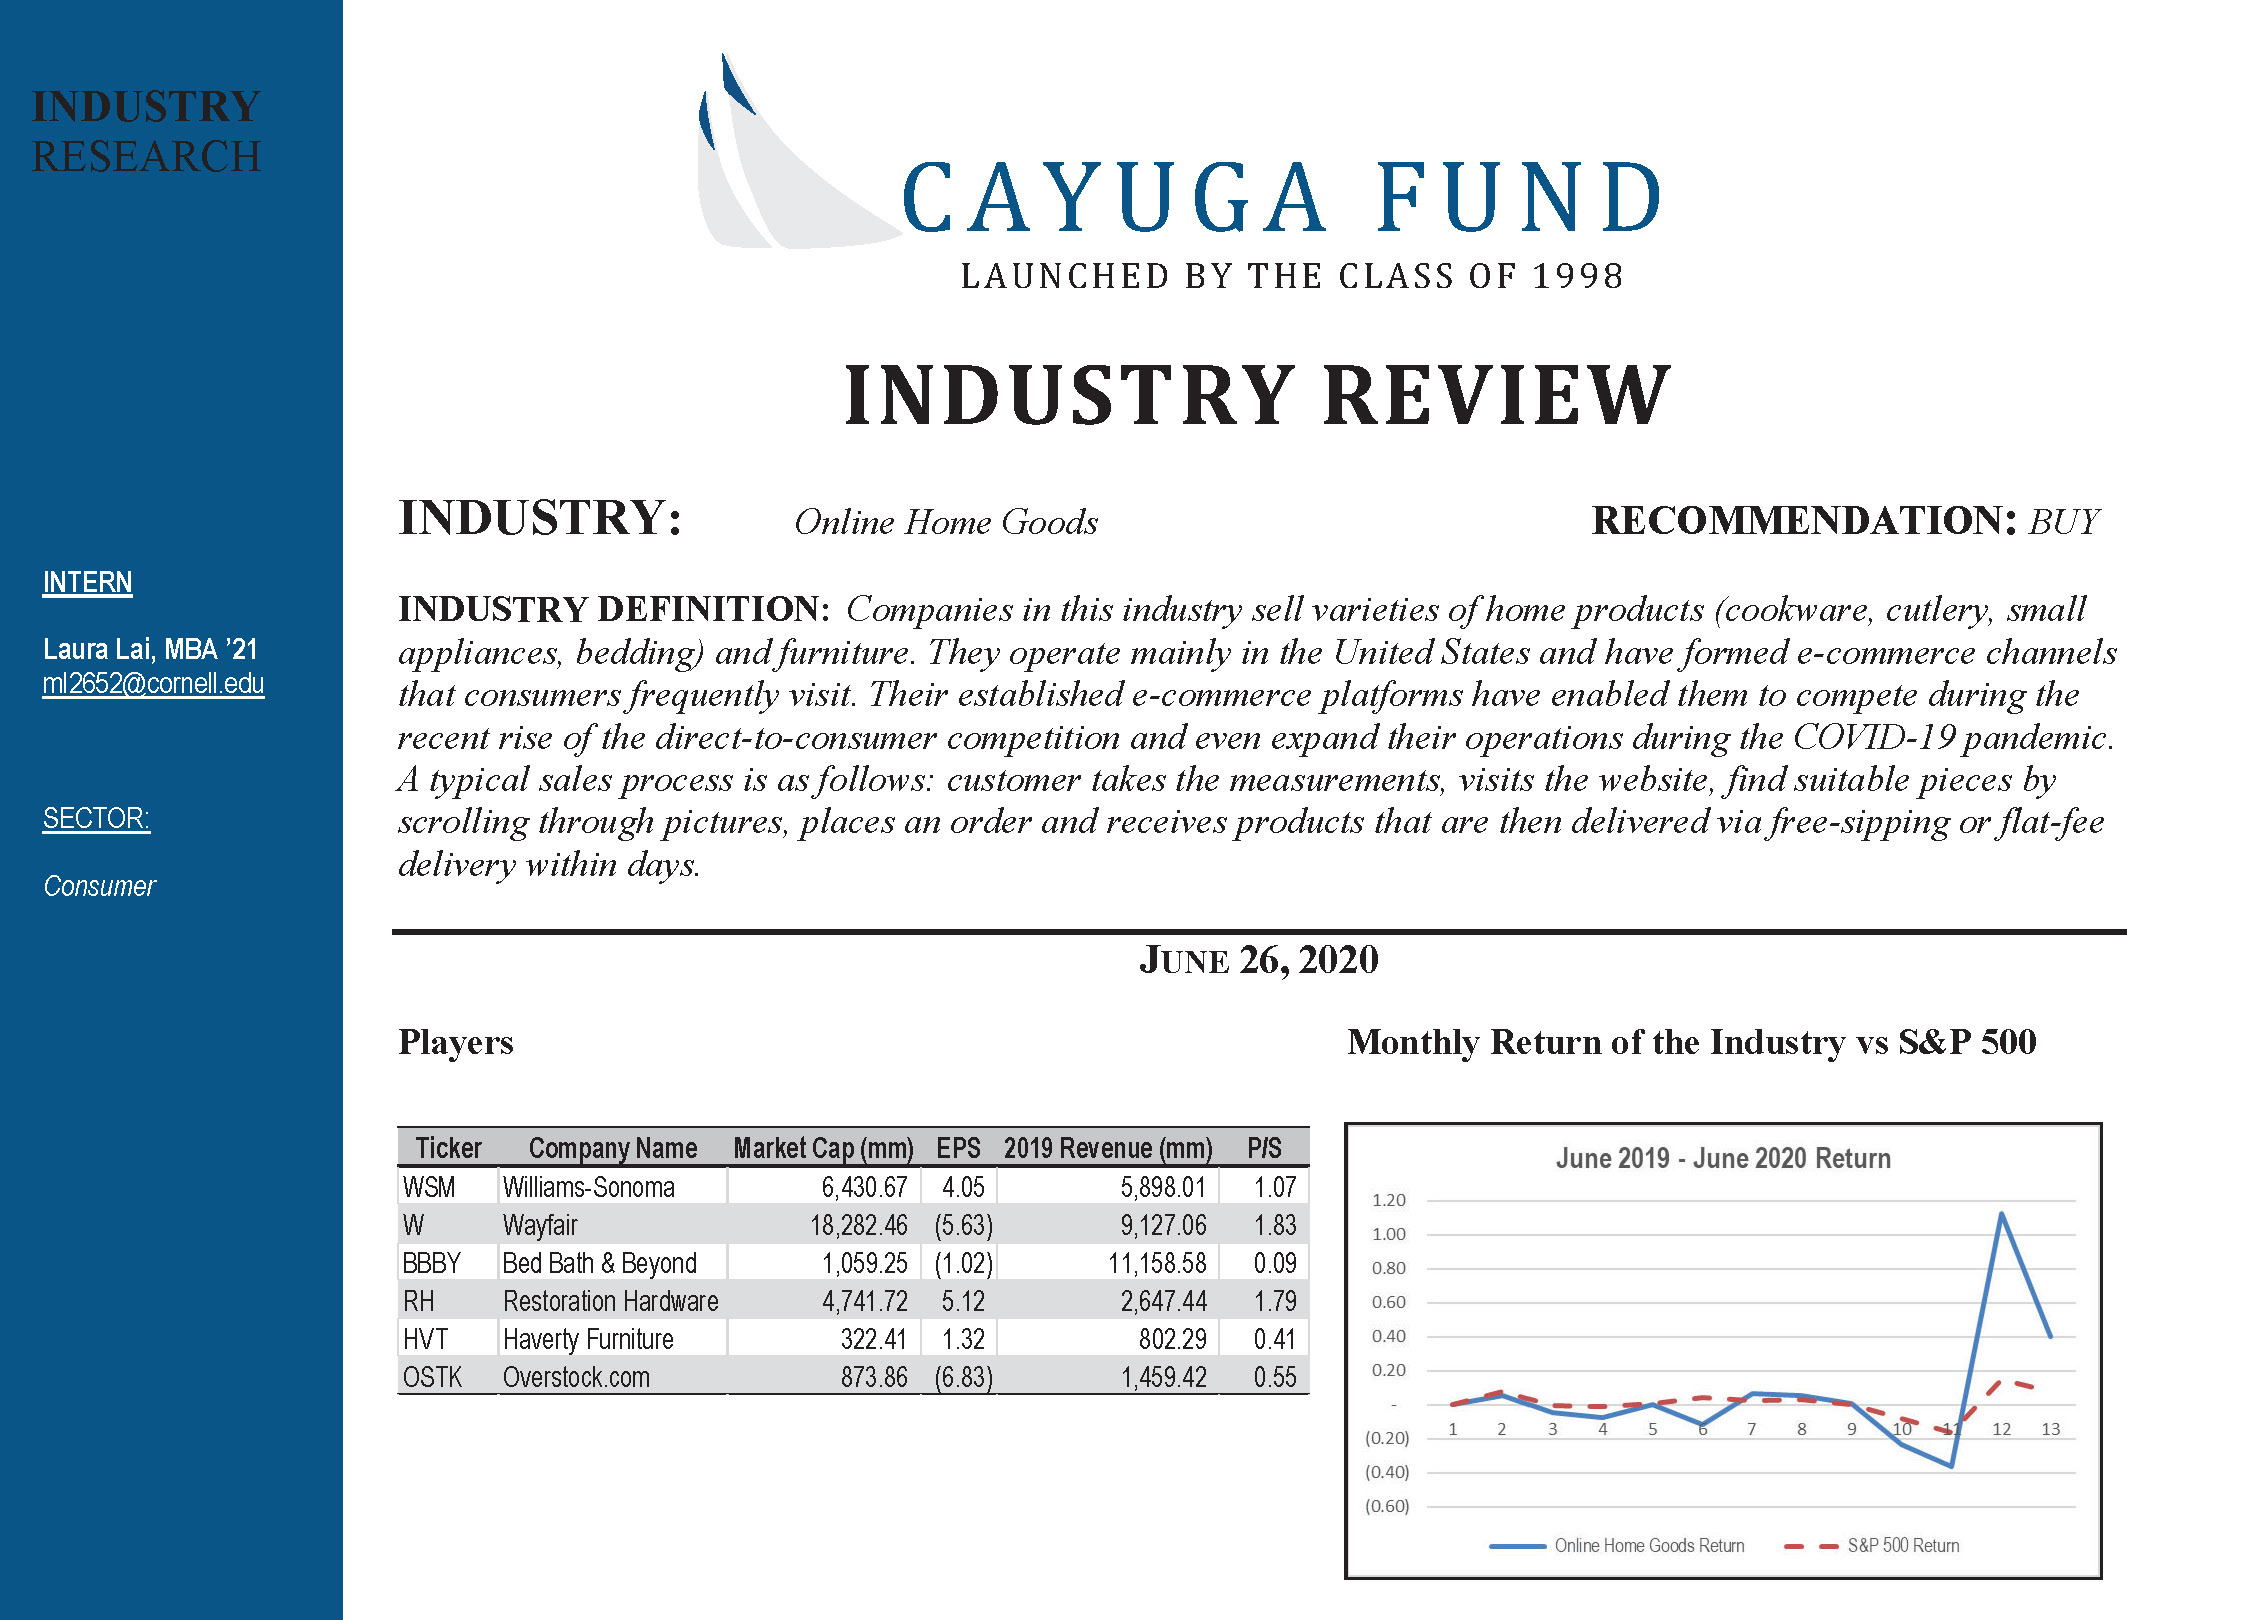 A copy of the front page of an industry report with a chart and graph